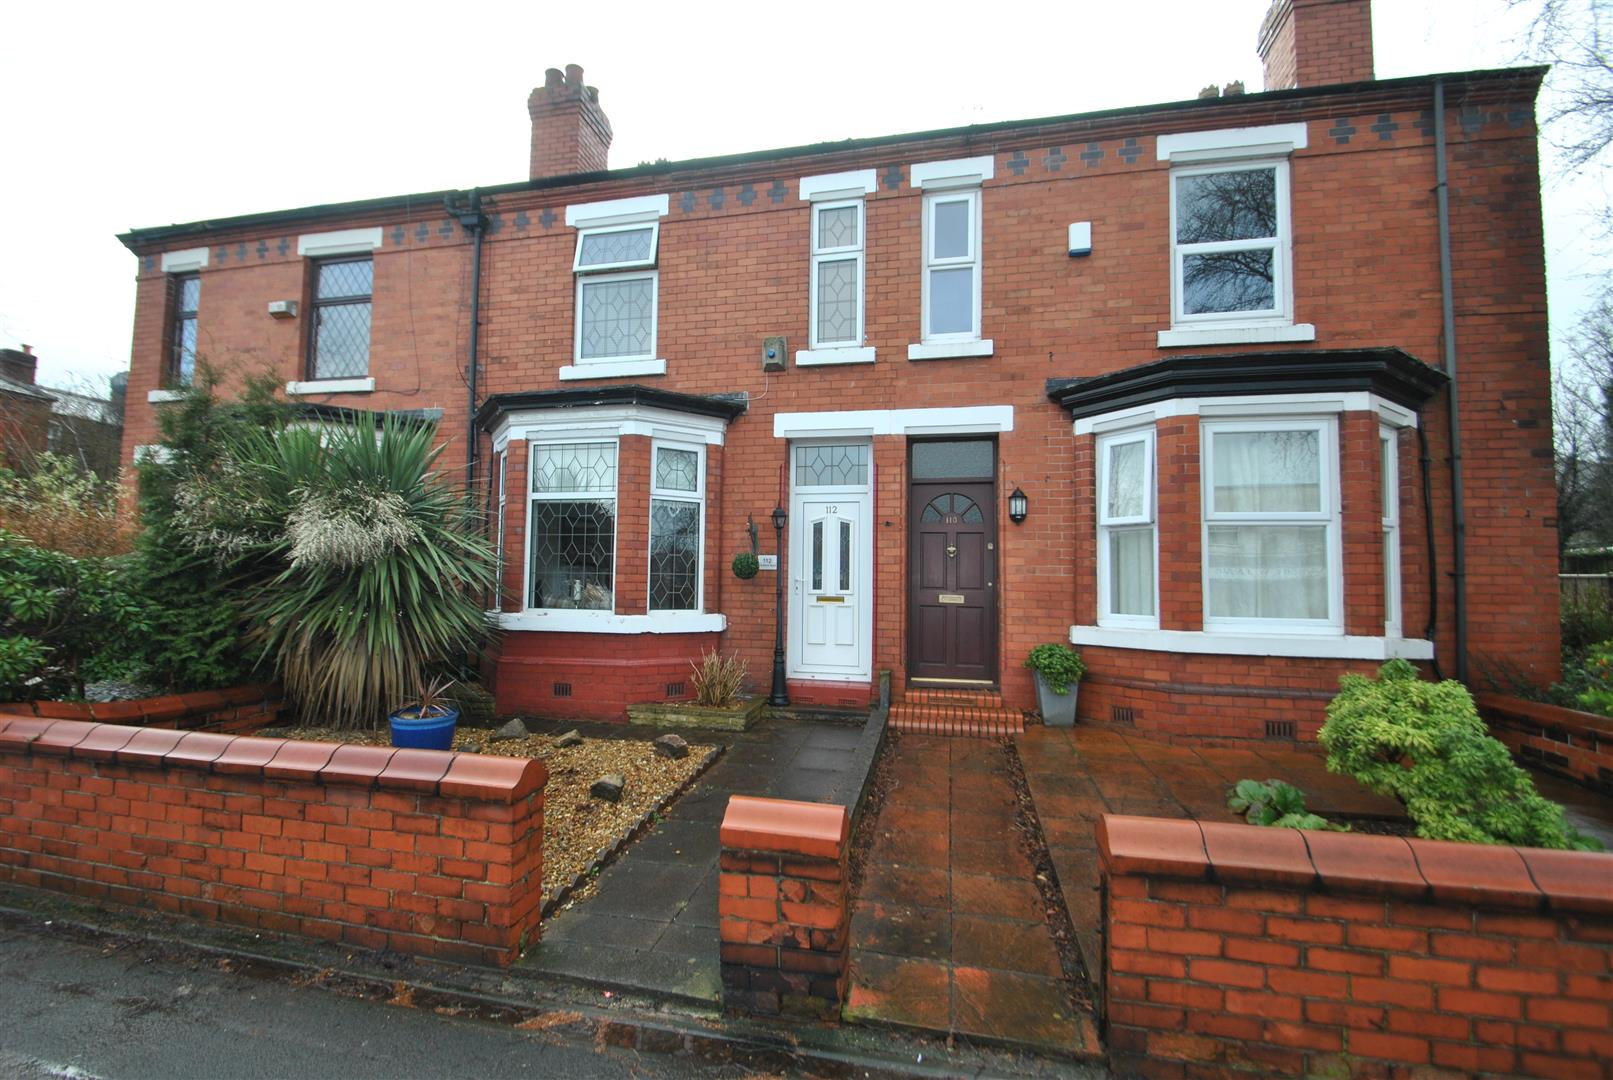 3 Bedrooms Terraced House for sale in Knutsford Road, GRAPPENHALL, Warrington, WA4